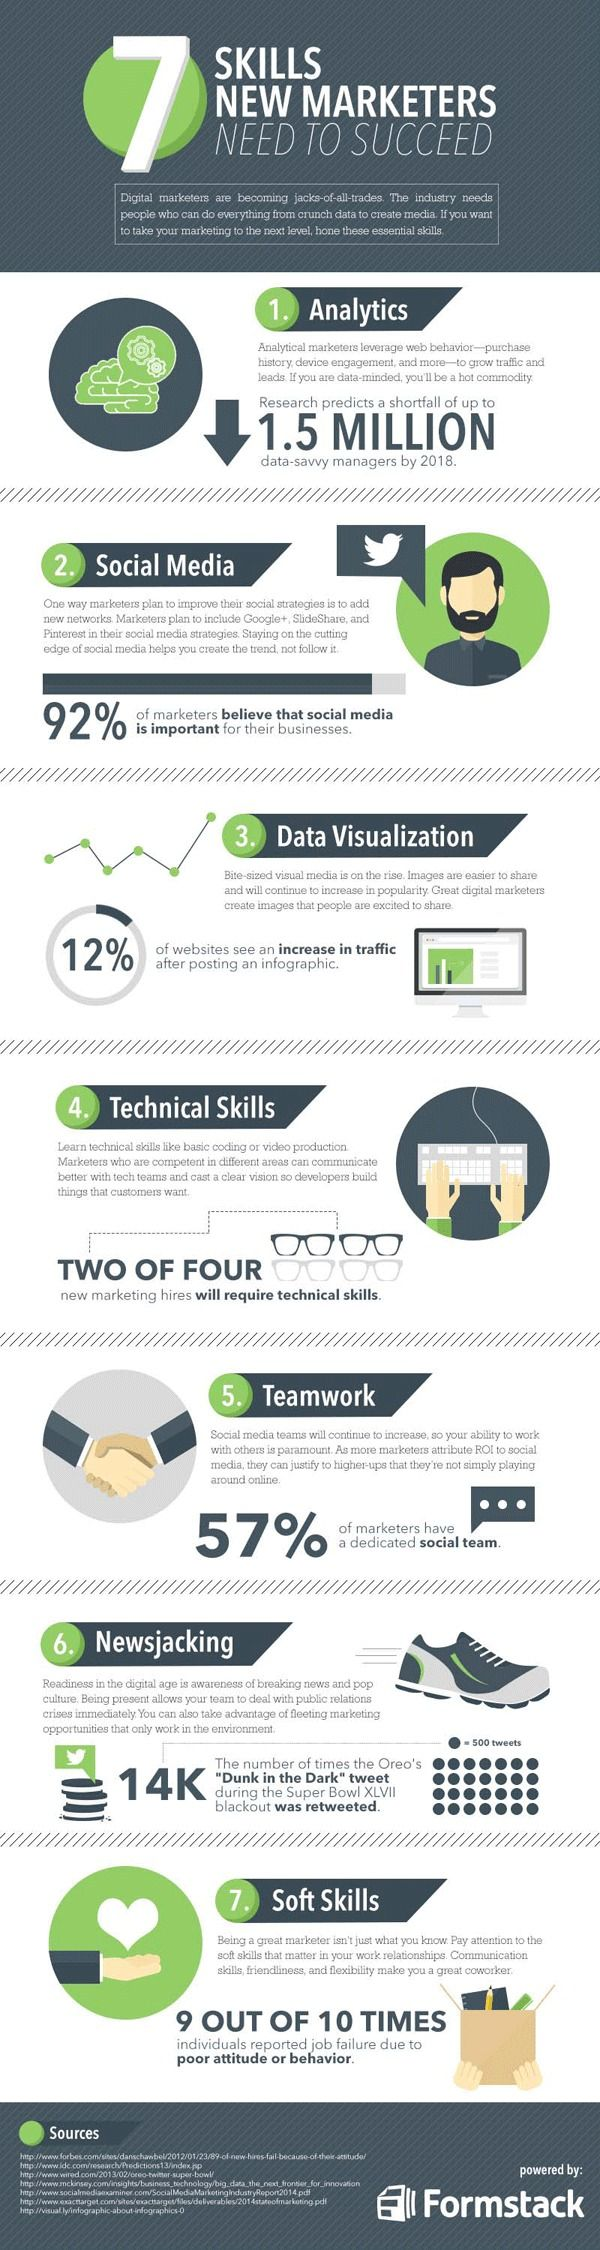 7 Skills All Digital Marketers Need to Succeed (Infographic) - Socially Stacked